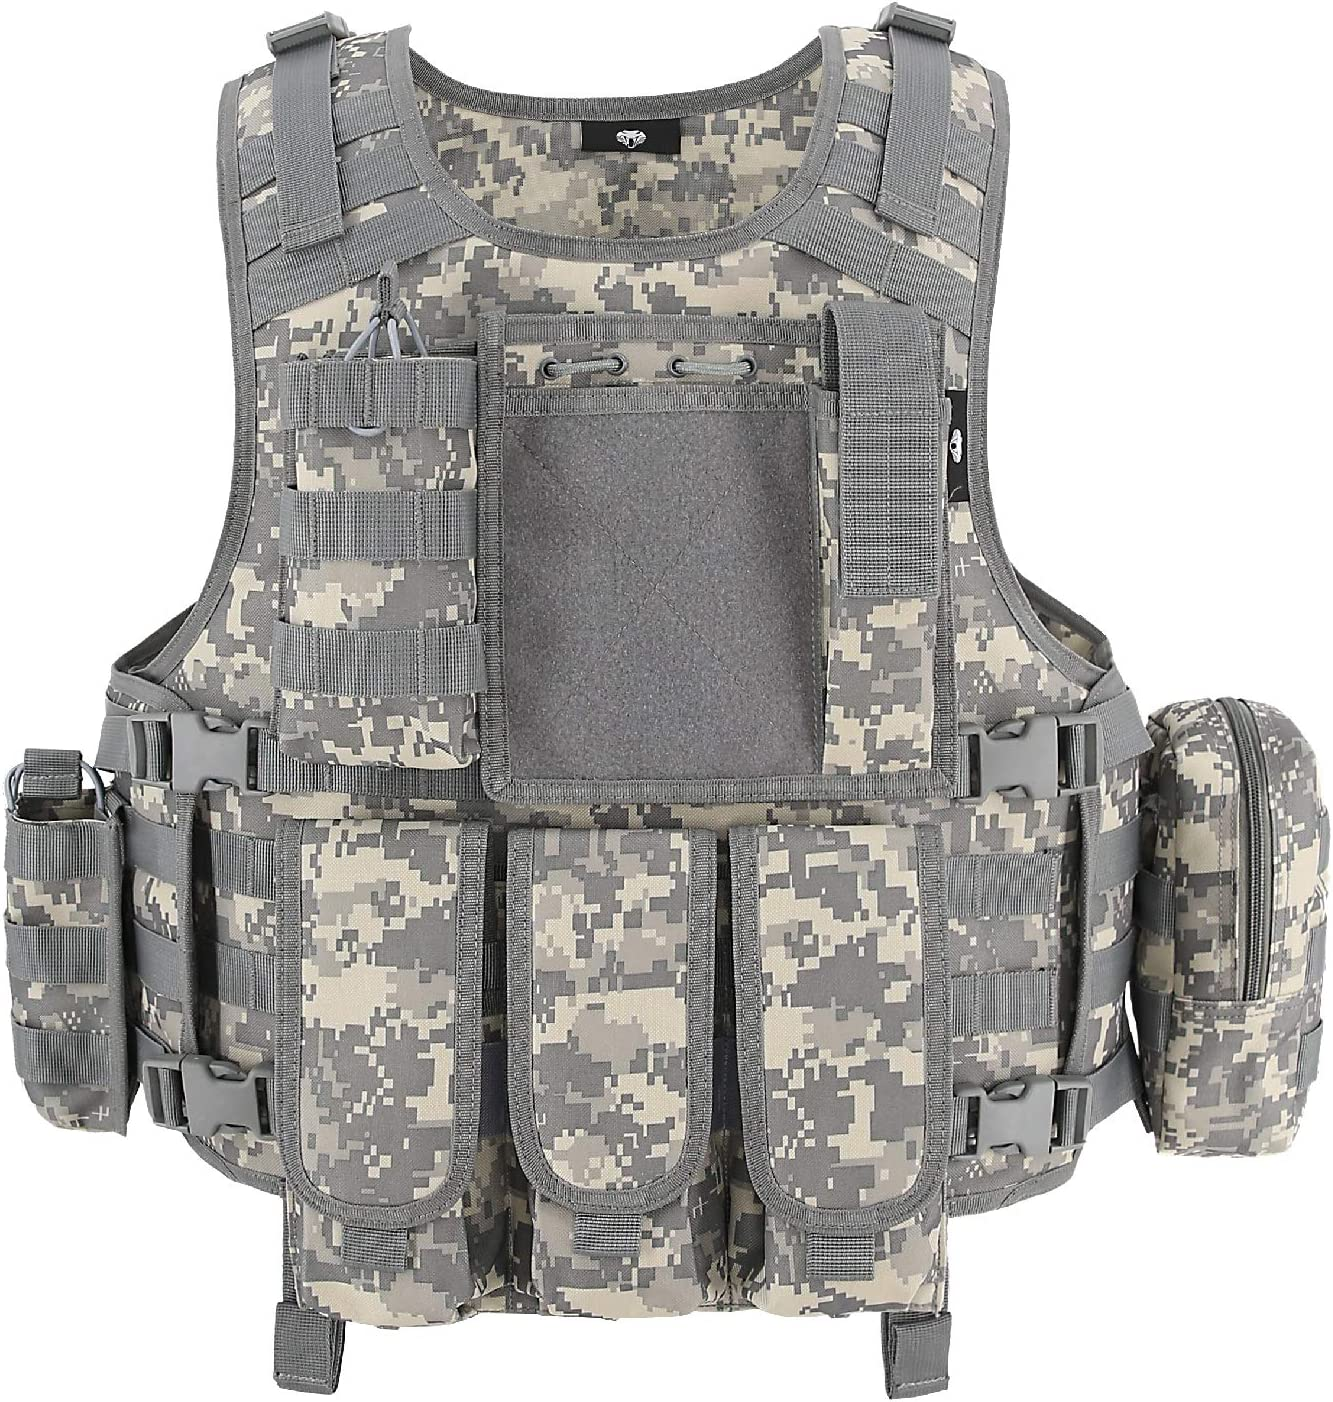 This is an image of a military vest with multiple pockets, camouflage color.